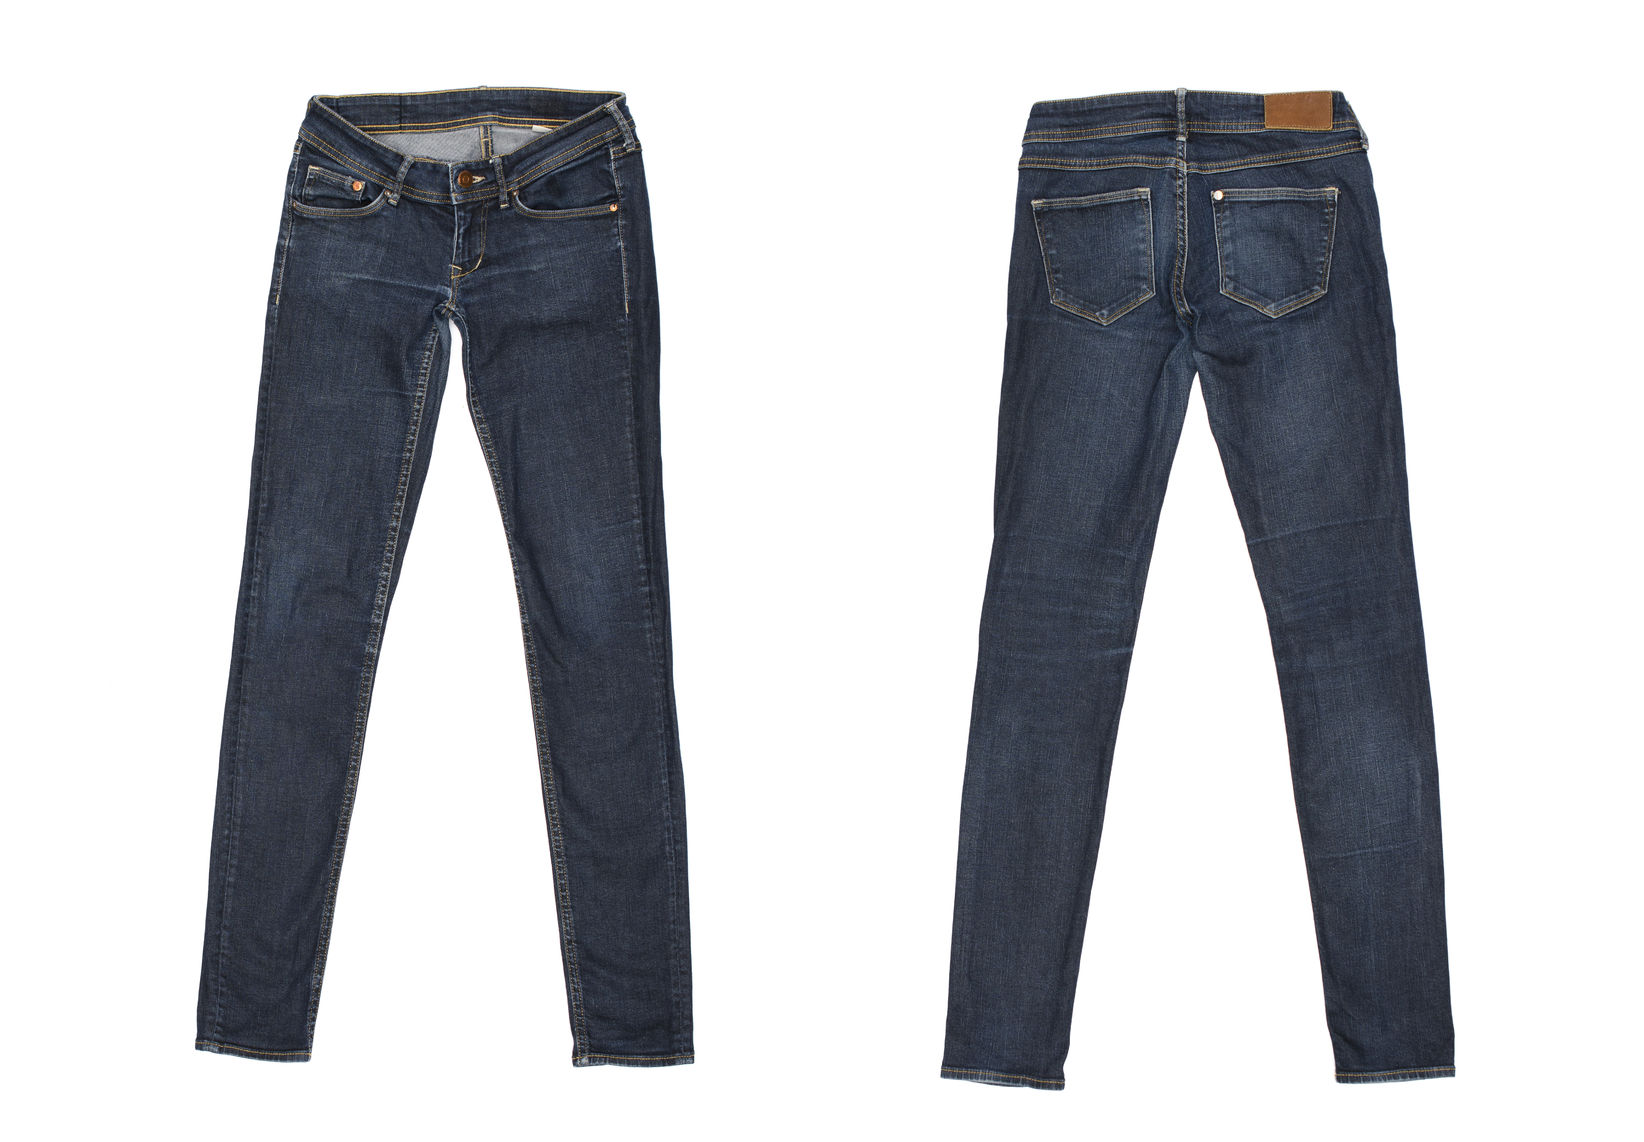 how my choice of blue jeans reflect how I think about the cost of replacement windows